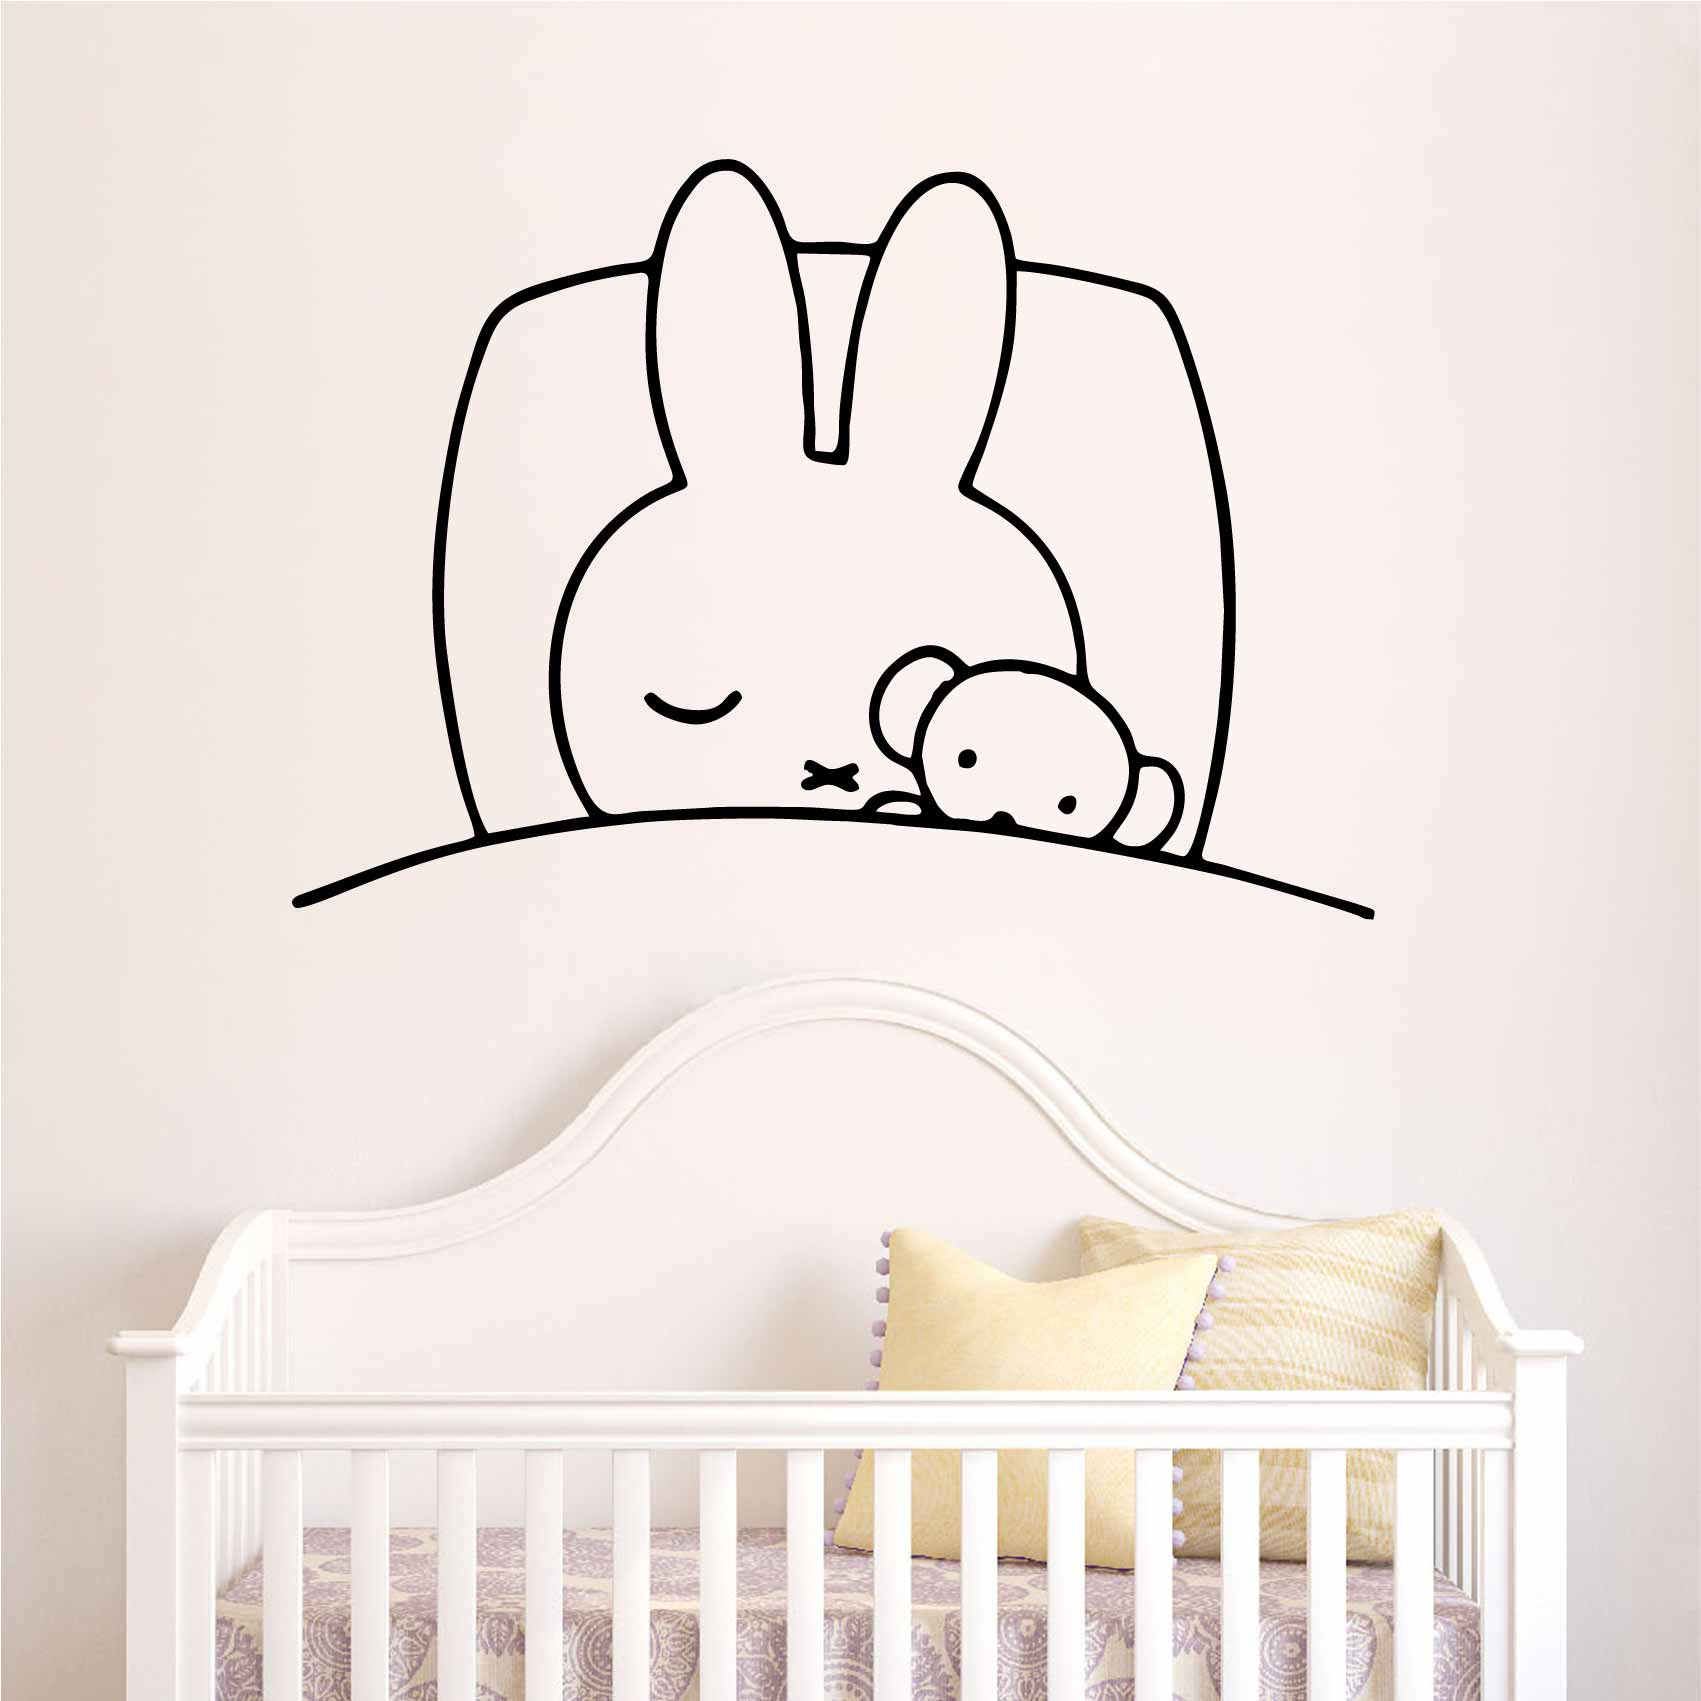 Sticker Chambre Enfant Stickers Lapin Endormi